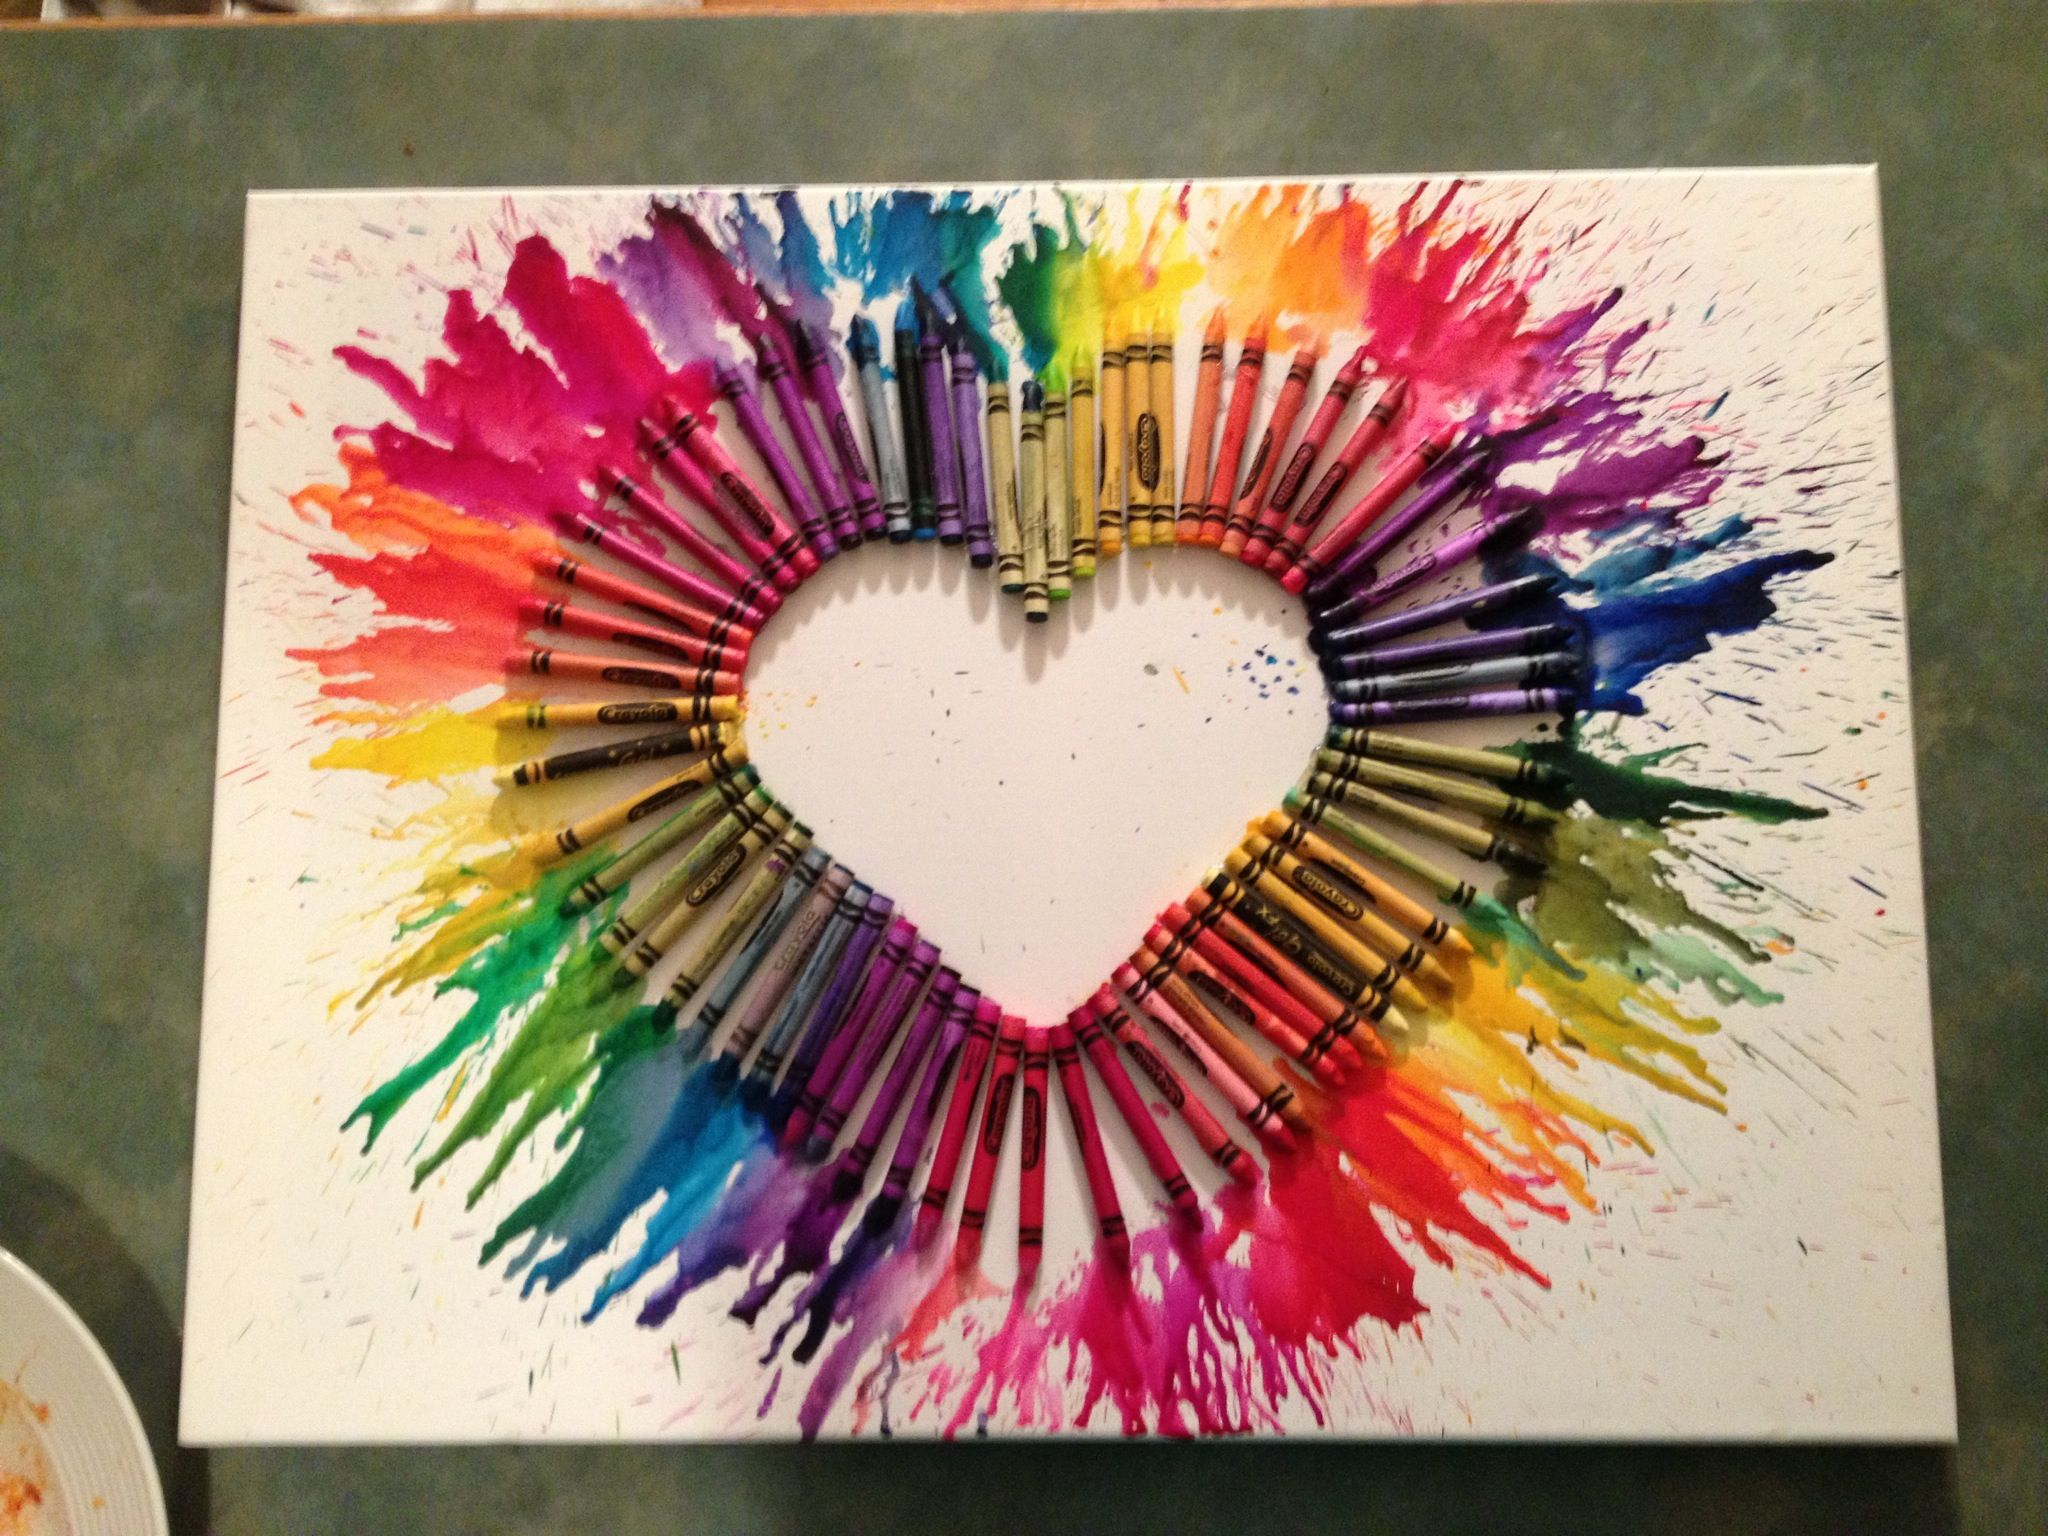 Crayon art Arts and crafts project  Favorite Crafts   Crayon art Crayon crafts Arts